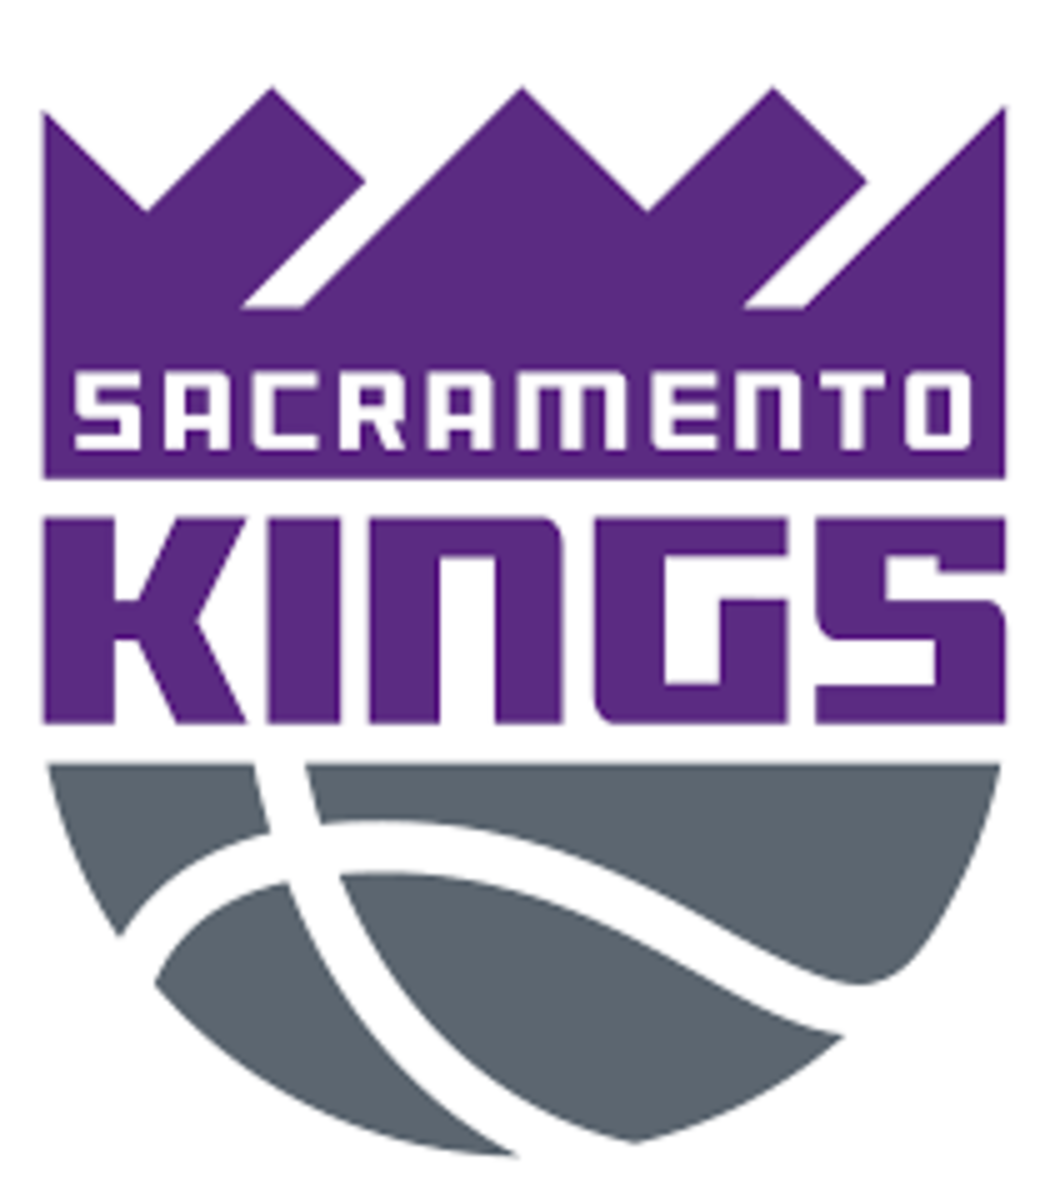 The Kings finished 31-41 last season to claim the 12th best record in the West.